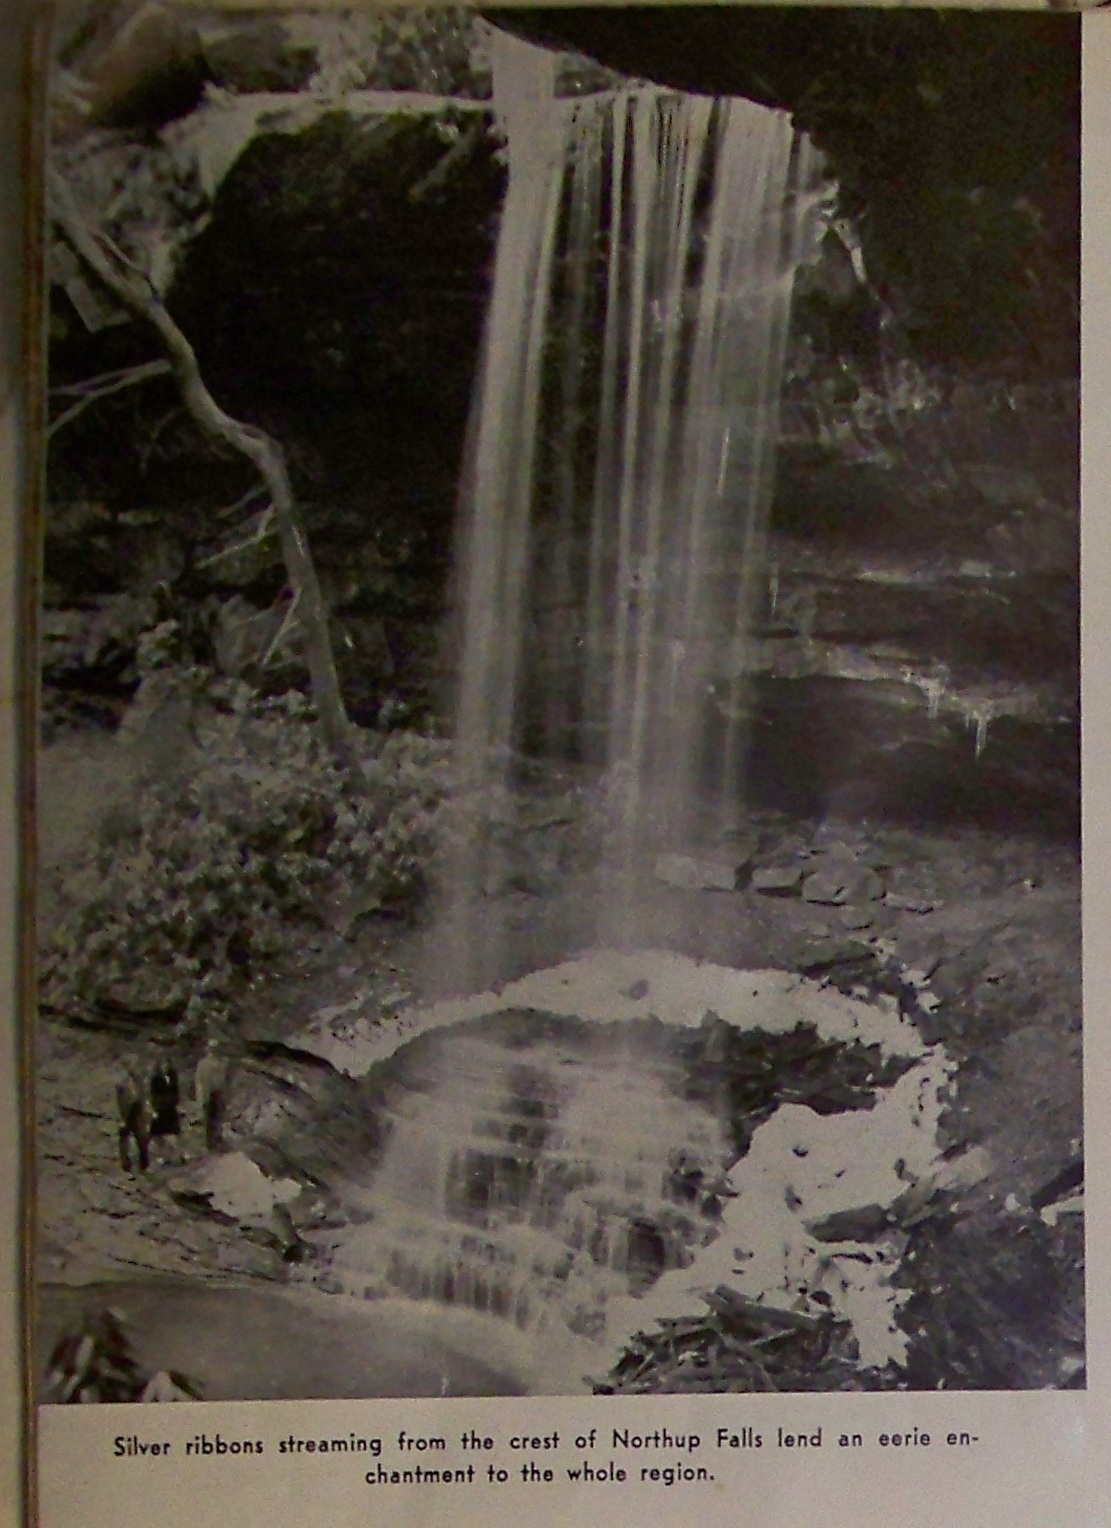 Northup Falls; You can still hike to it: Scott at Backwoods Adventures knew just where the trailhead is located.